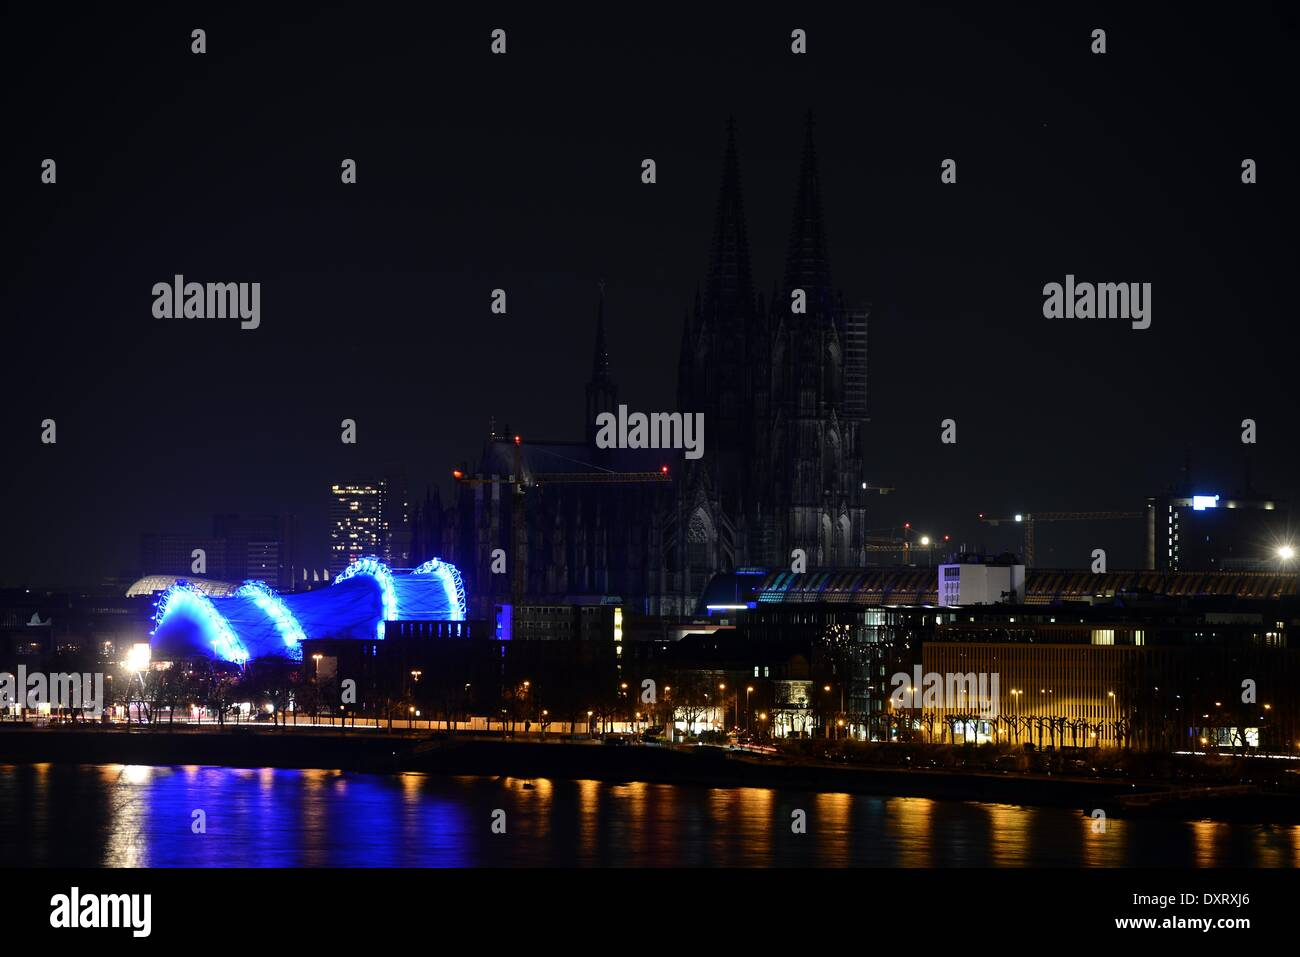 A view of the unlit cathedral during the 'Earth Hour' event in Cologne, Germany, 29 March 2014. 'Earth Hour' is a worldwide event which aims to set a sign for environmental  protection and to draw attention to environmental awareness. Photo: Henning Kaiser/dpa - Stock Image